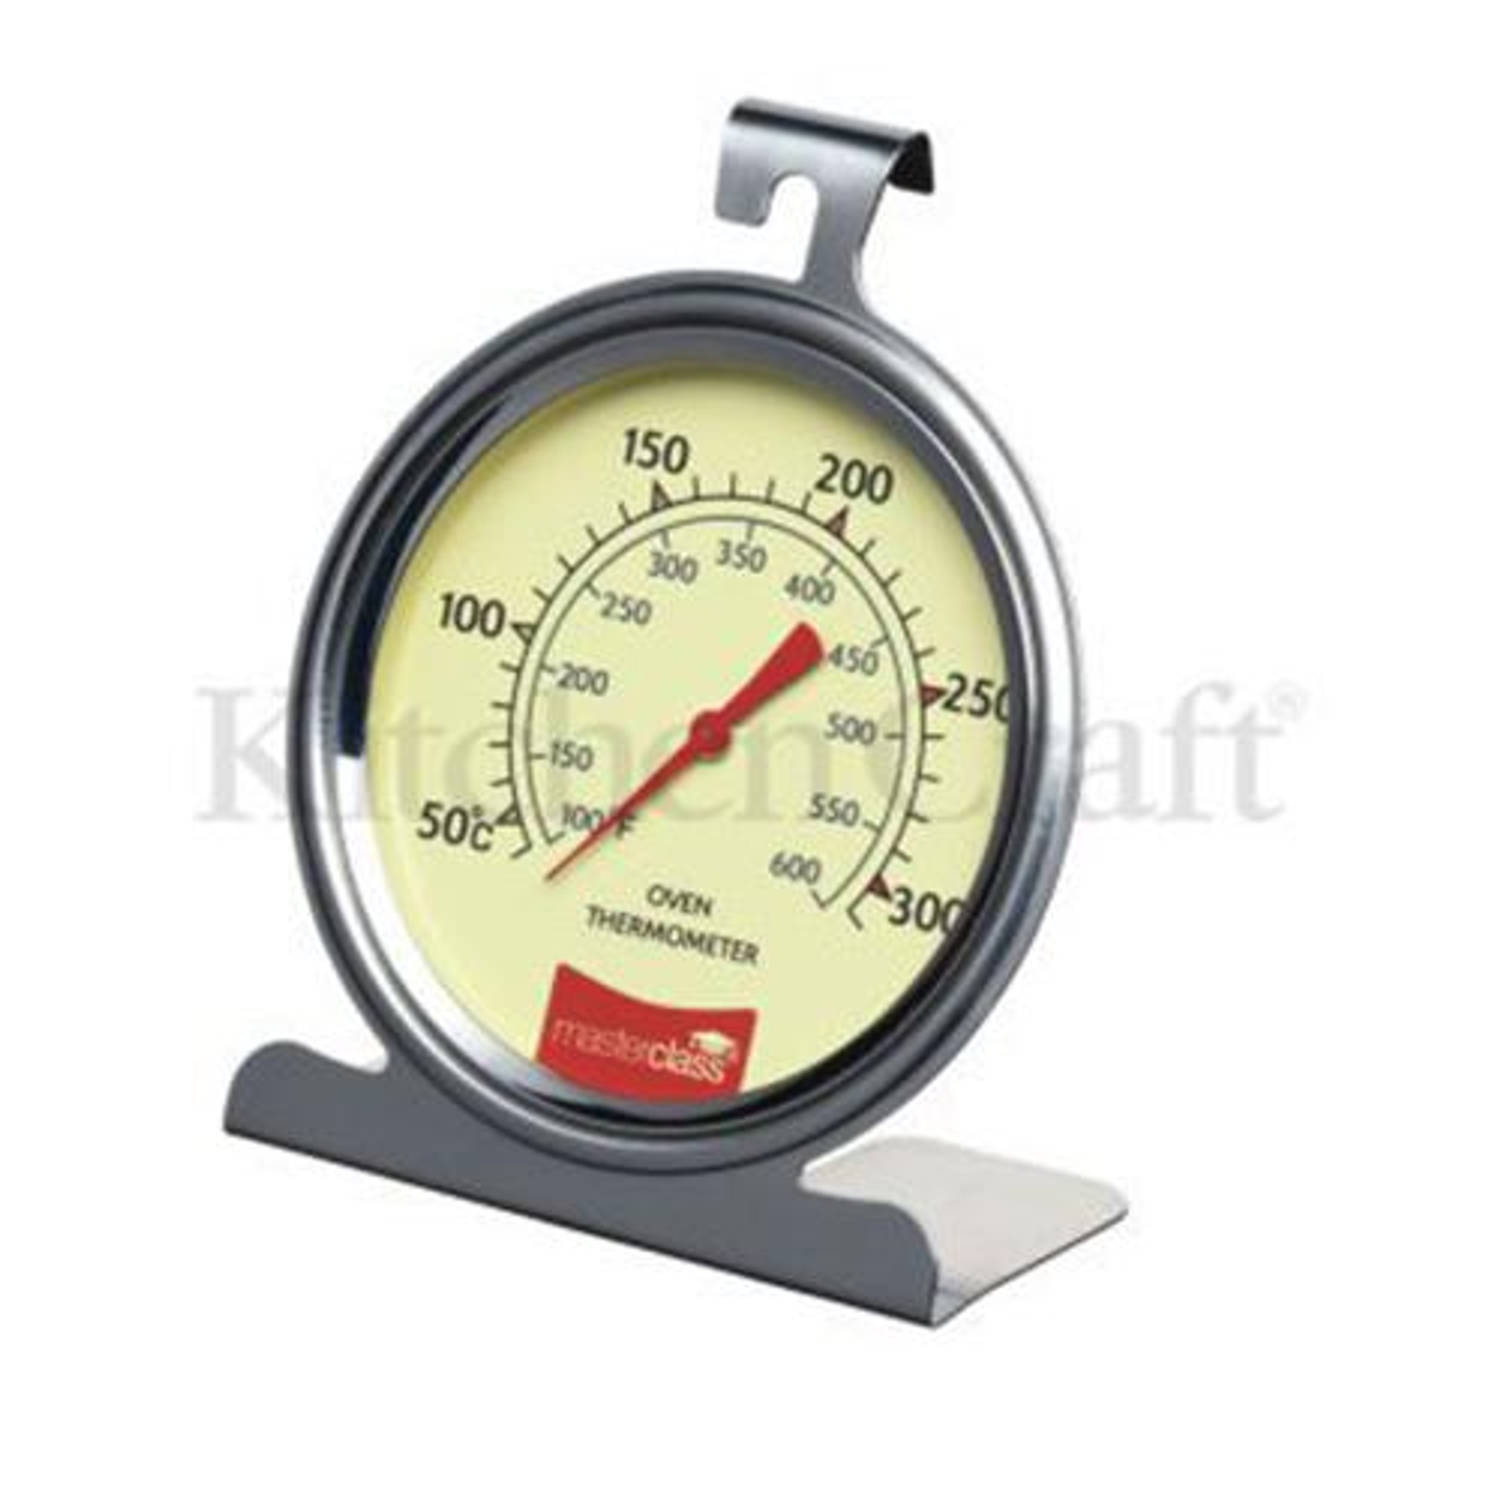 Luxe RVS oventhermometer - Masterclass